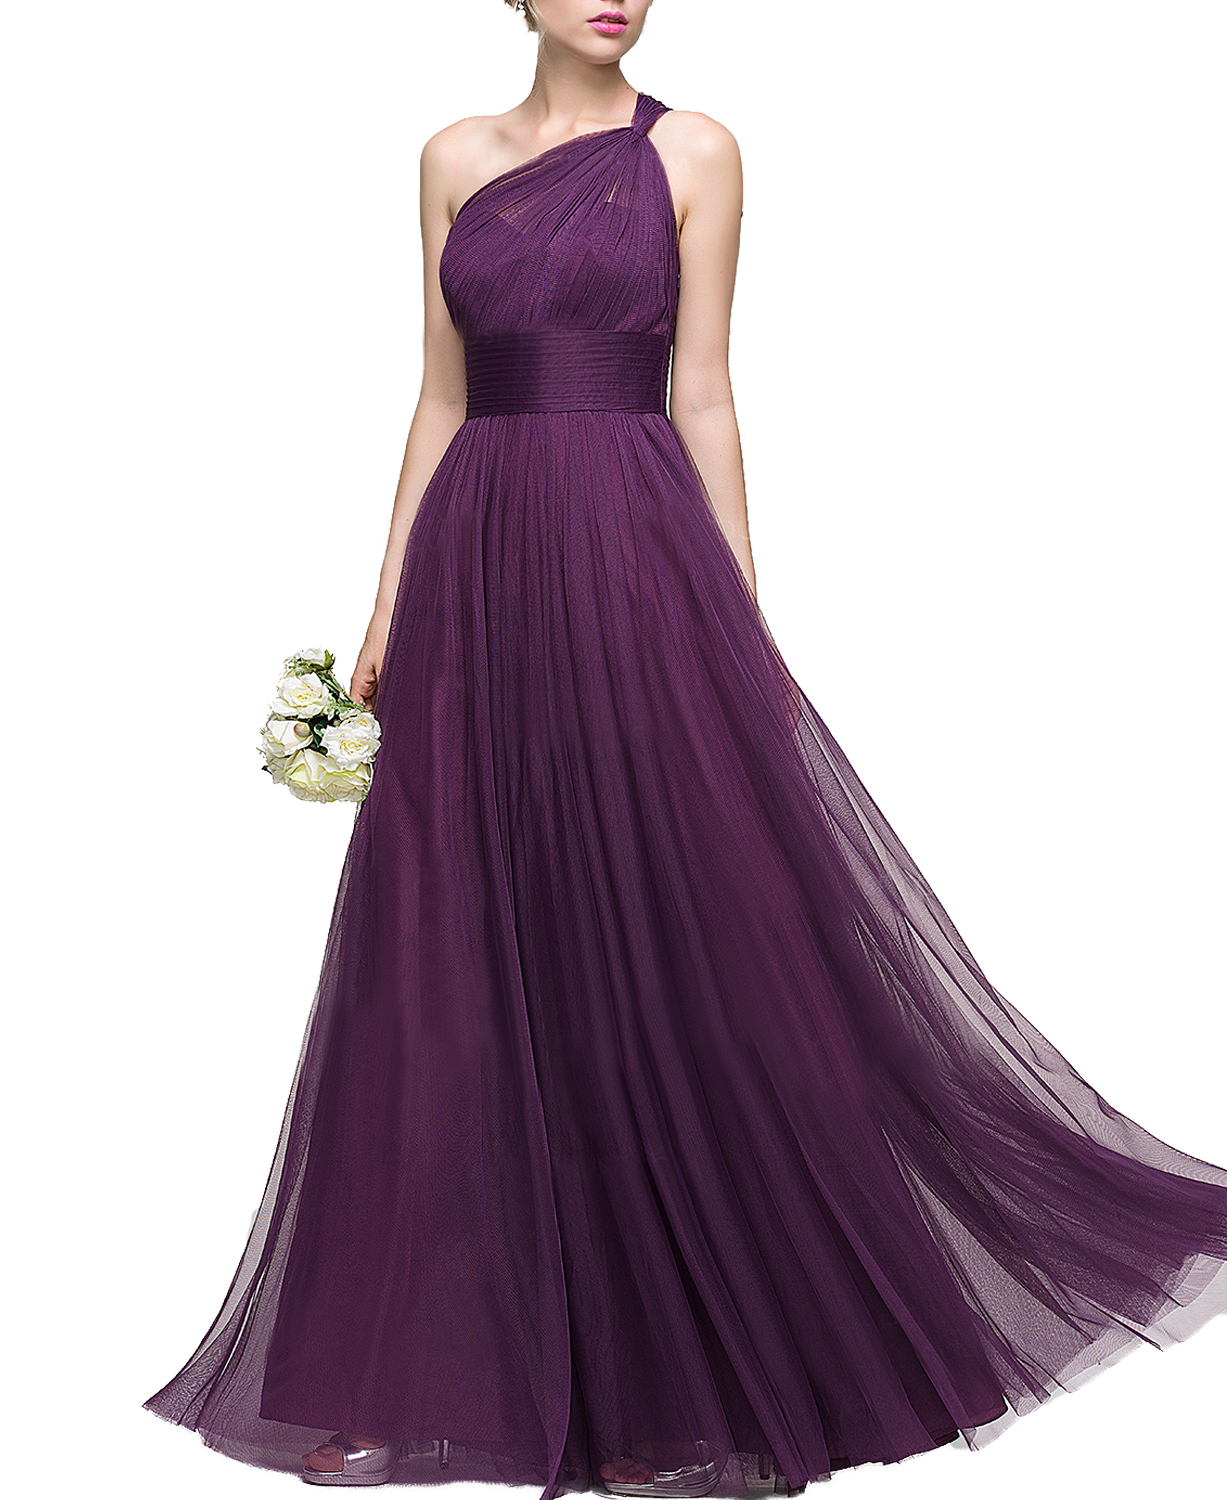 A-Line Princess One-Shoulder Floor-Length Tulle Bridesmaid Dress With Ruffle,Long Purple Tulle One Shoulder Wedding Party Dress Prom Dress,One Shoulder Long Tulle Purple Evening Dress